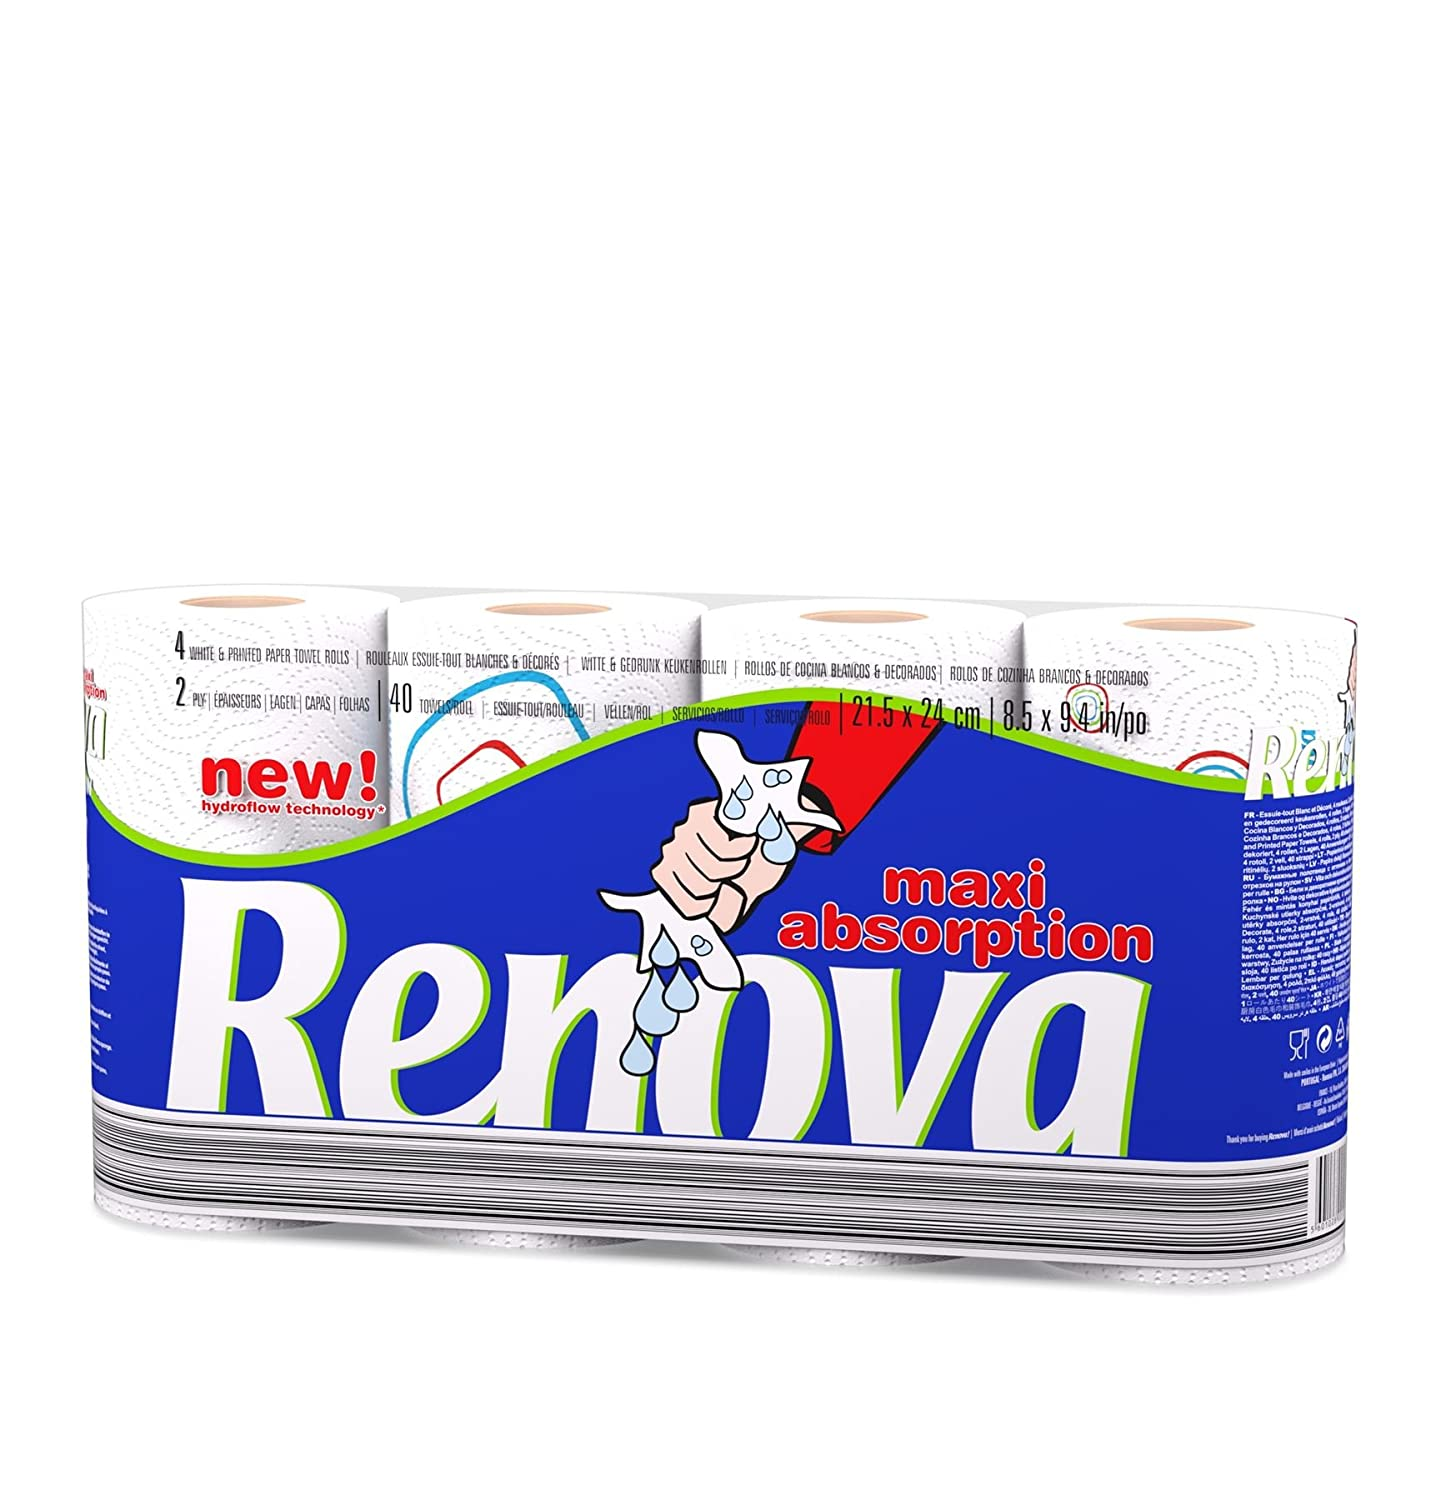 Renova Maxi Absorption Kitchen Tissue Paper Roll with New Hydrofolow Technology (4 Rolls)